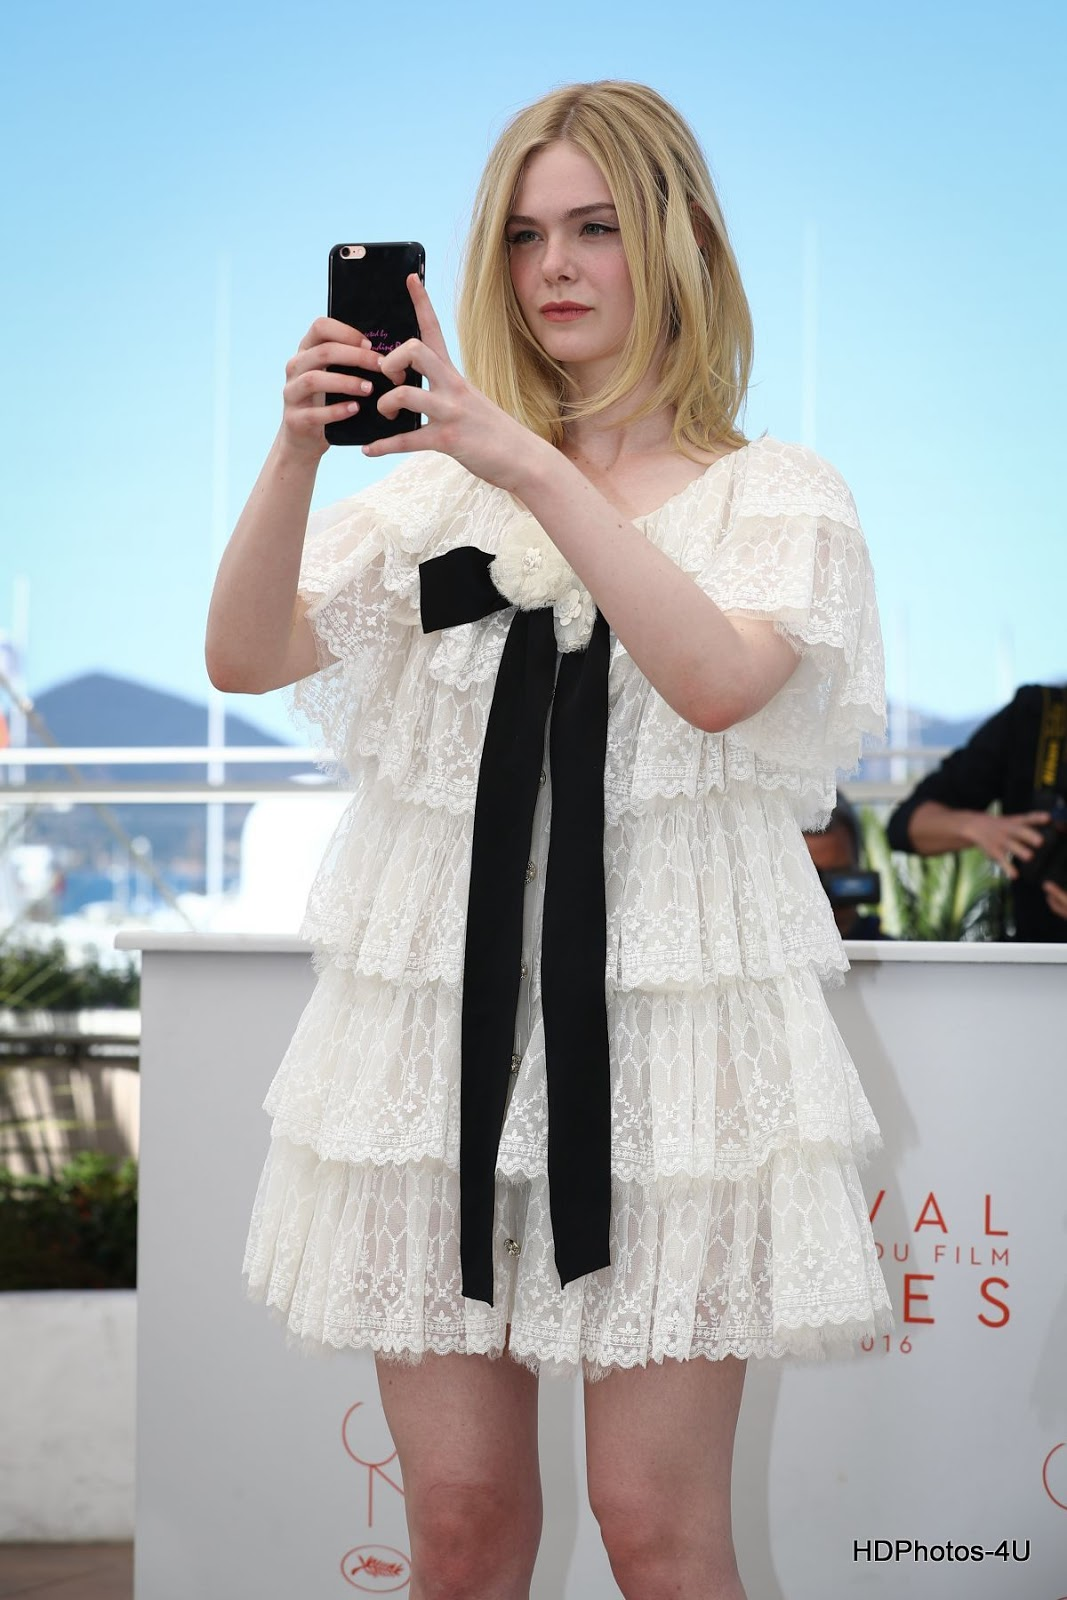 Full HQ Photos of Elle Fanning At The Neon Demon Photocall At 2016 Cannes Film Festival